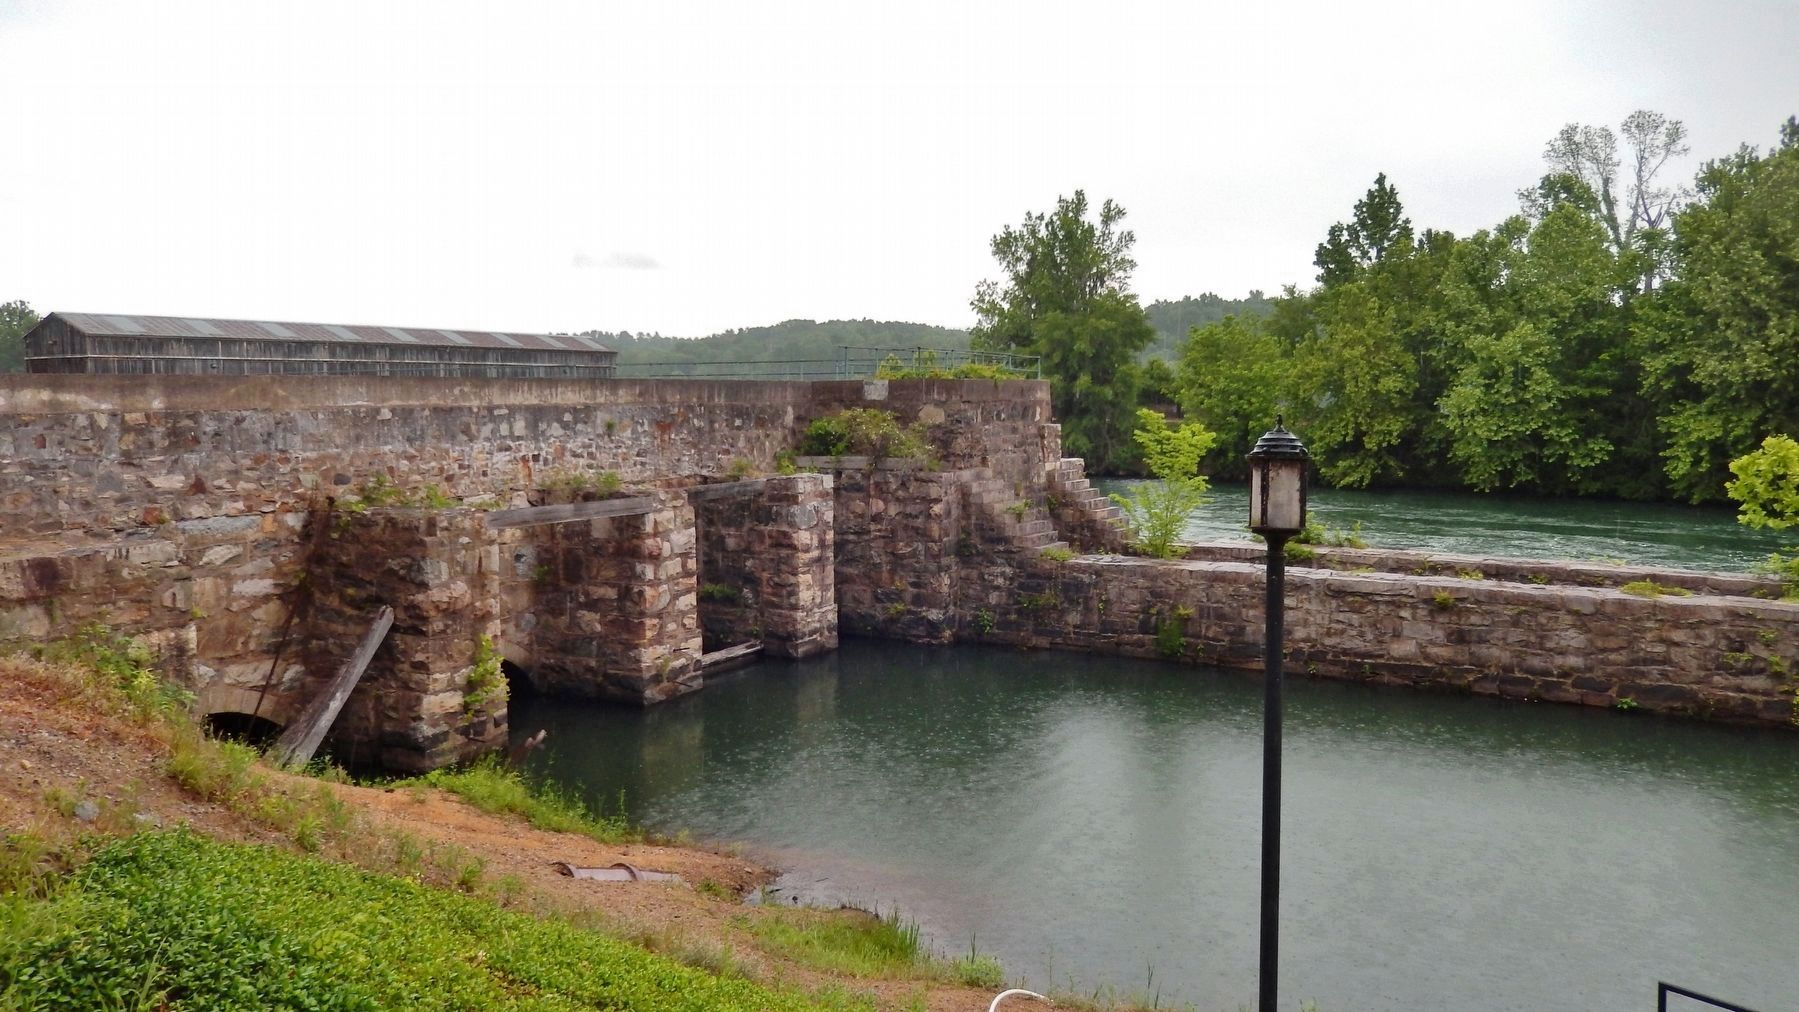 Augusta Canal 1845 Lock and Headgates (<i>no longer in use</i>) image. Click for full size.